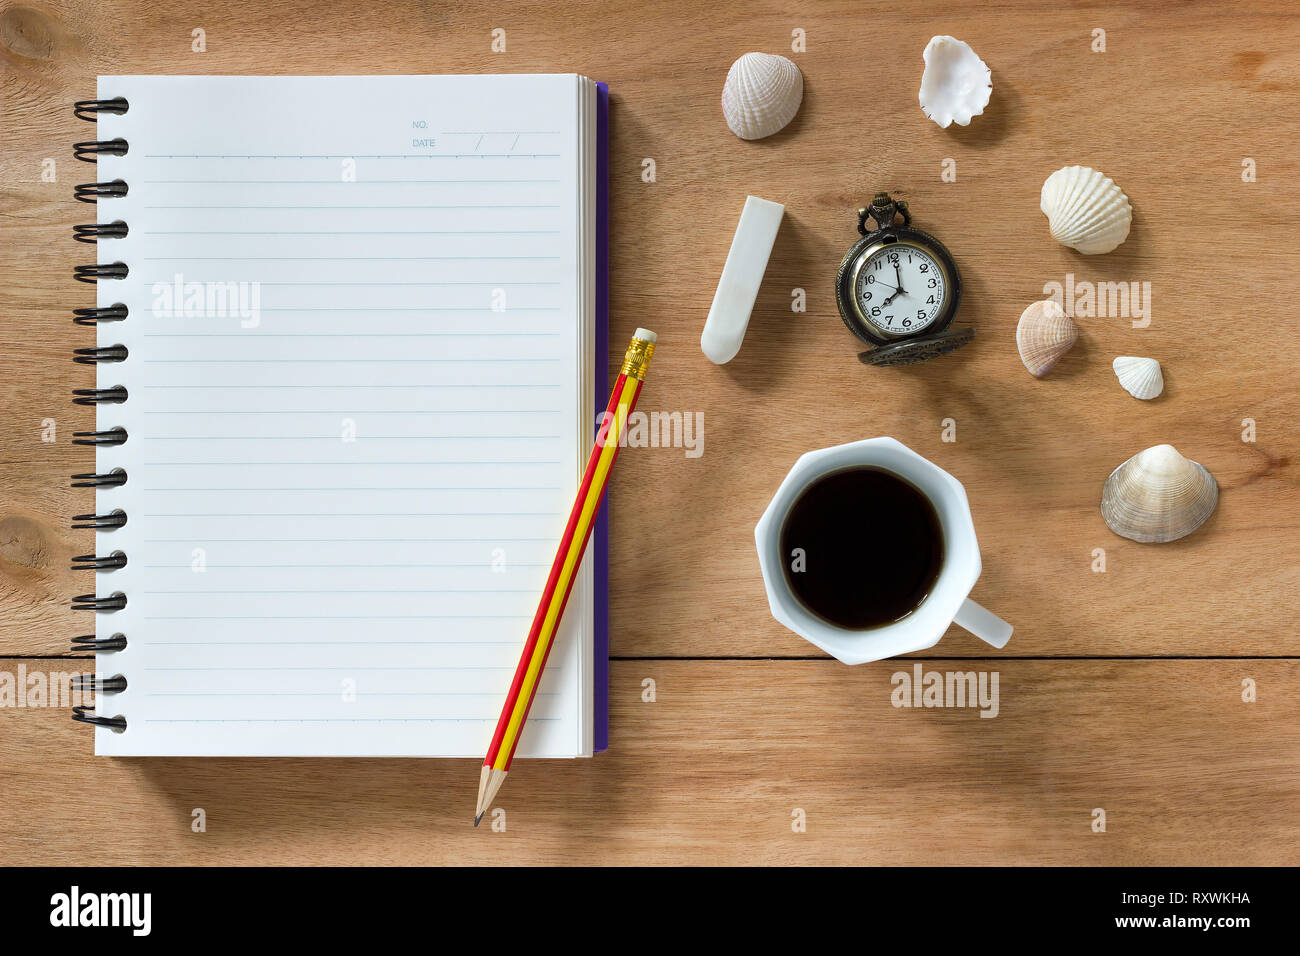 Bank notebook with pencil and eraser laying on the brown table. Vintage clock at 8 o'clock, Black coffee and shells on table. - Stock Image